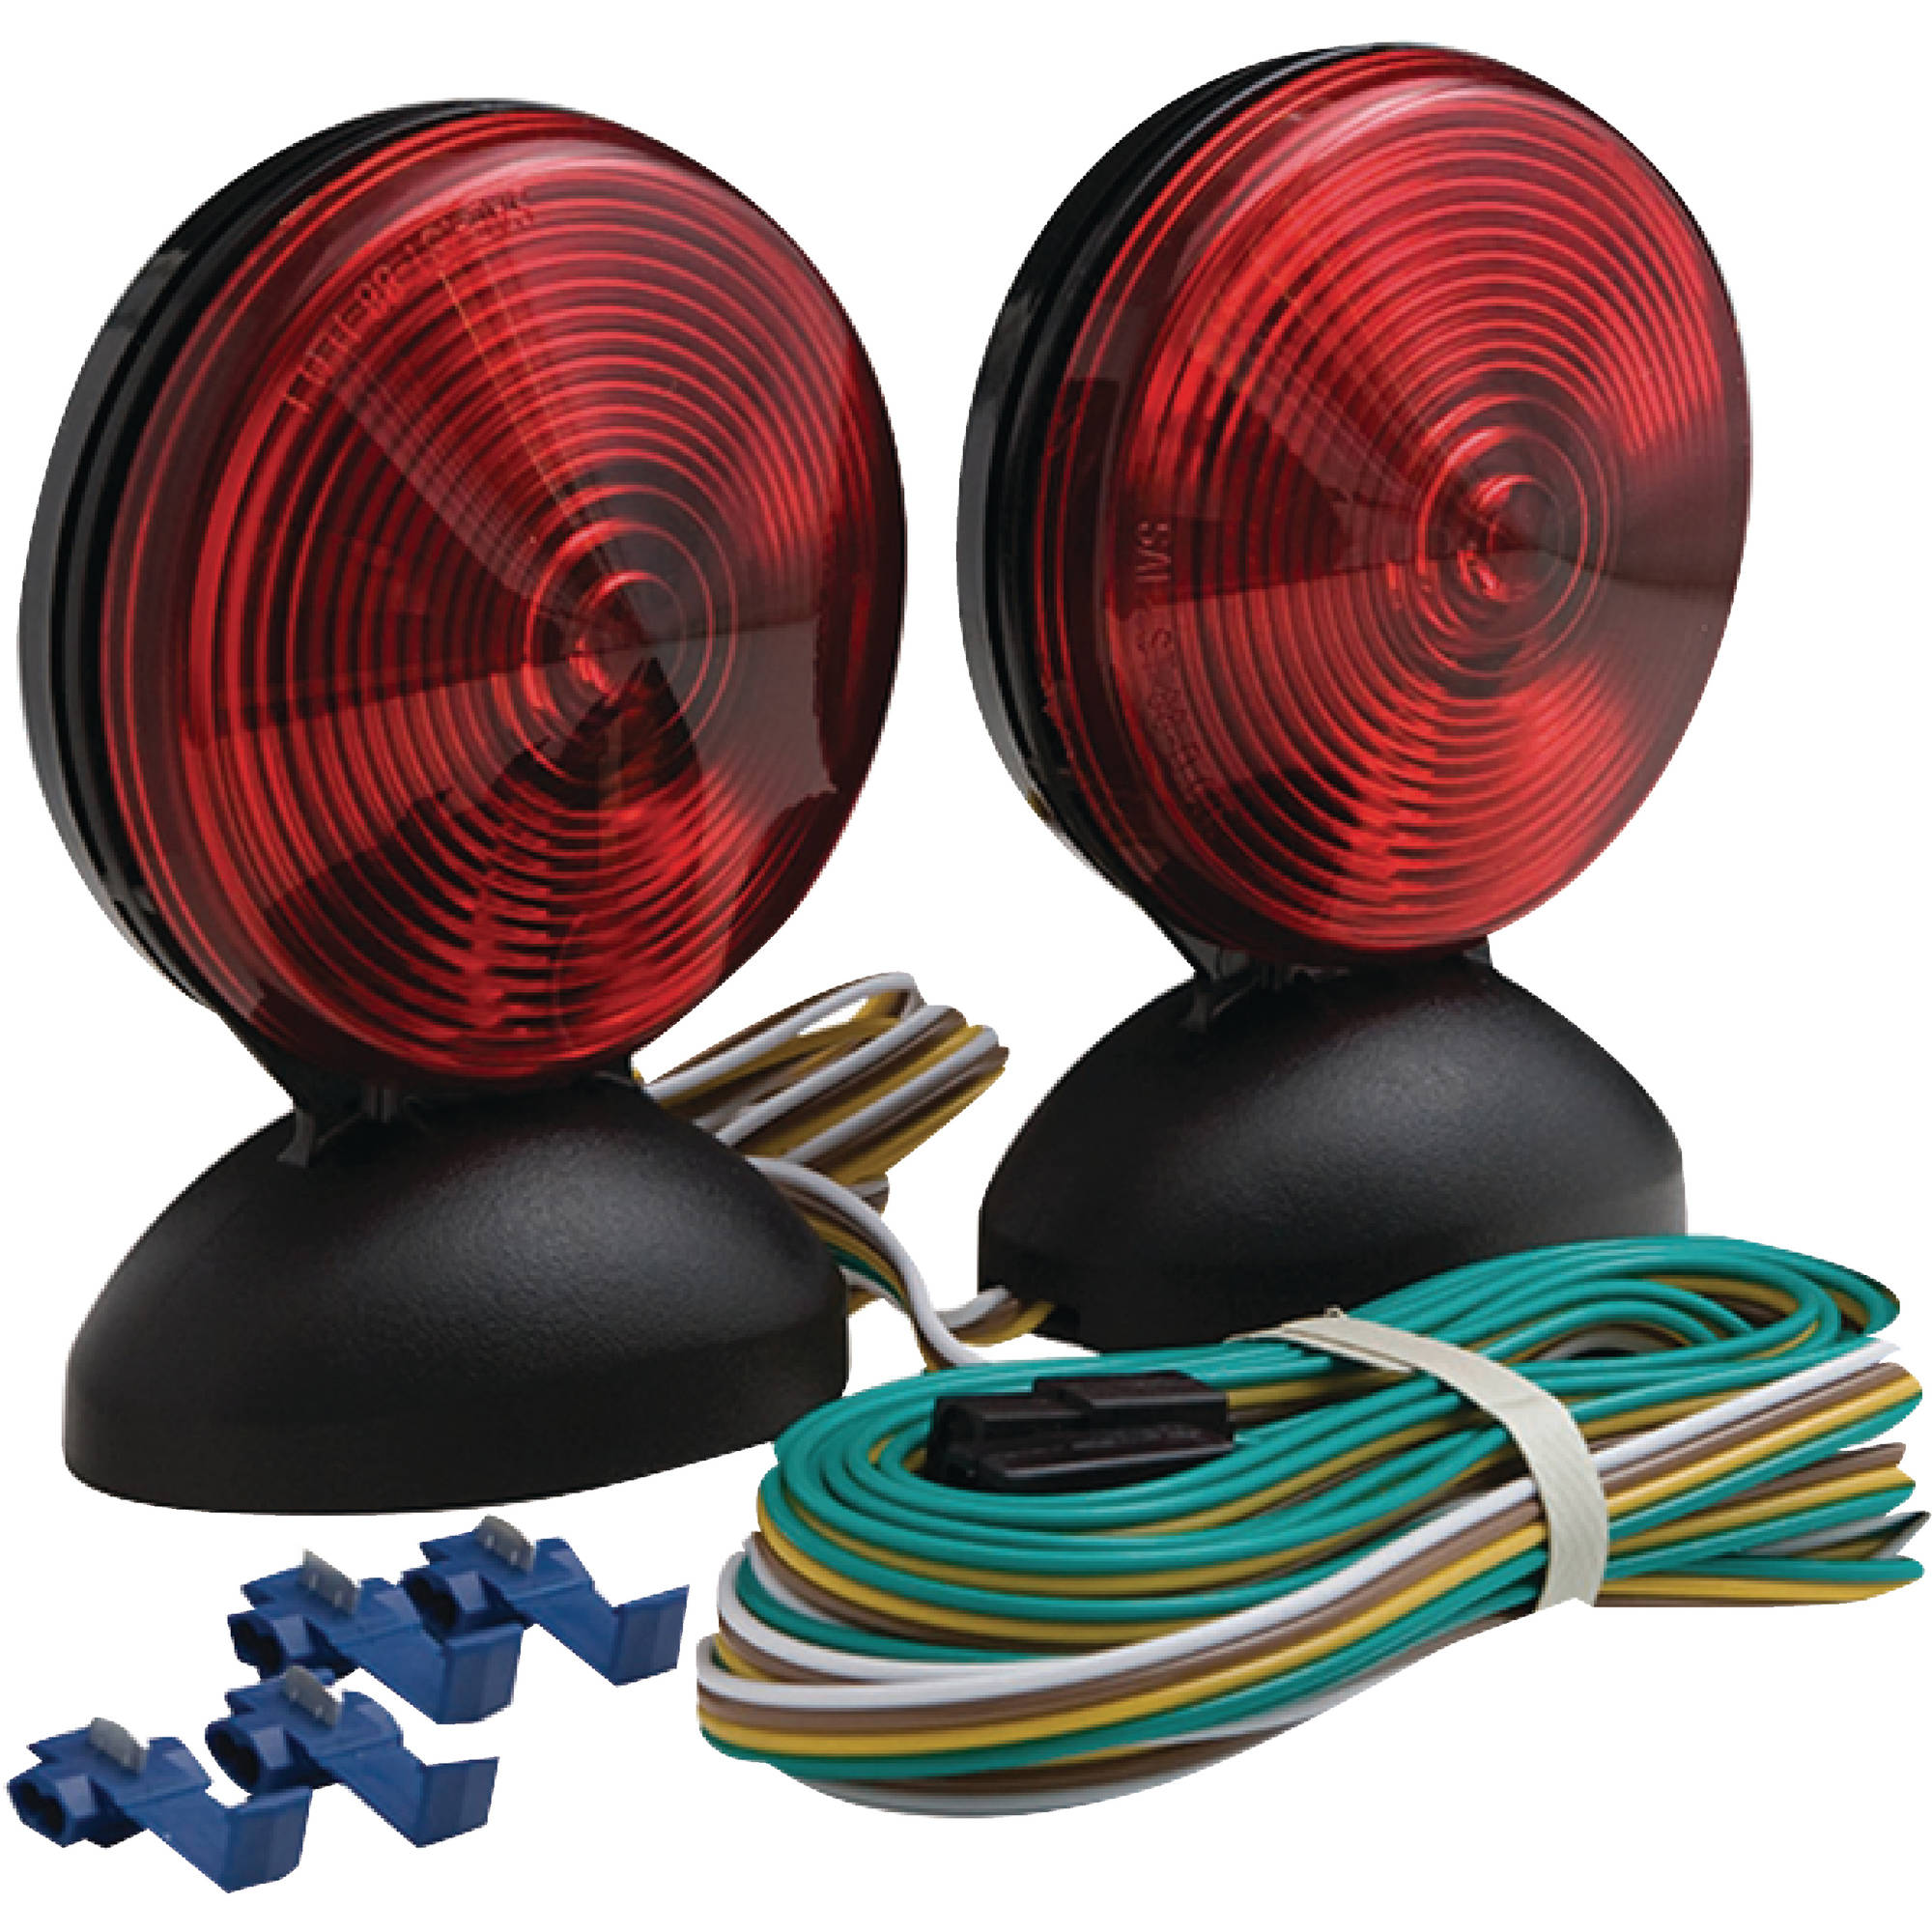 hight resolution of optronics tl22rk magnet mount towing light kit includes 20 wishbone style wiring harness walmart com